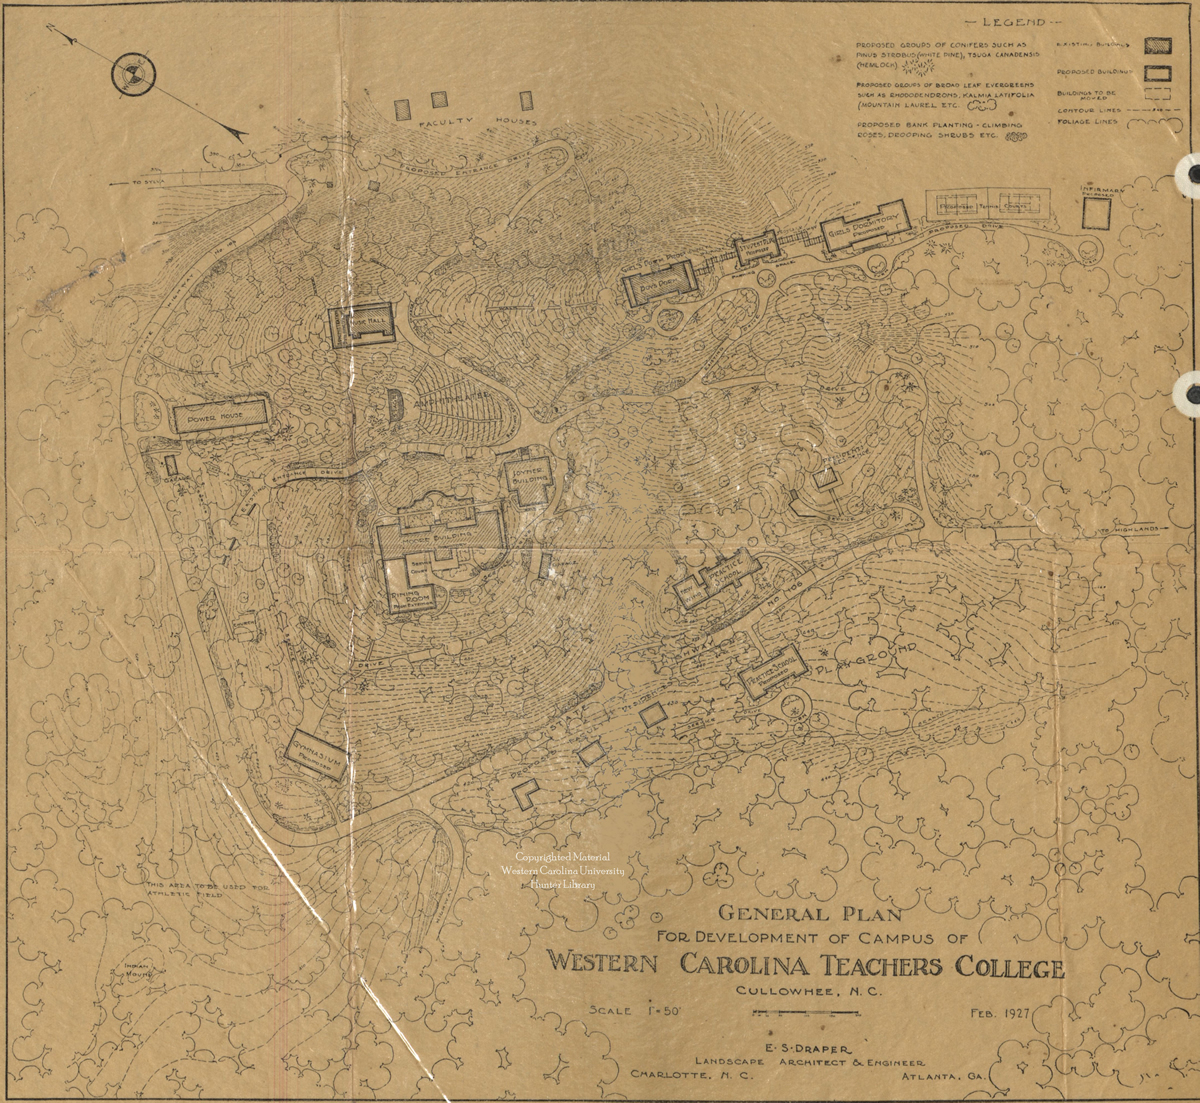 Campus map showing Cherokee mound.